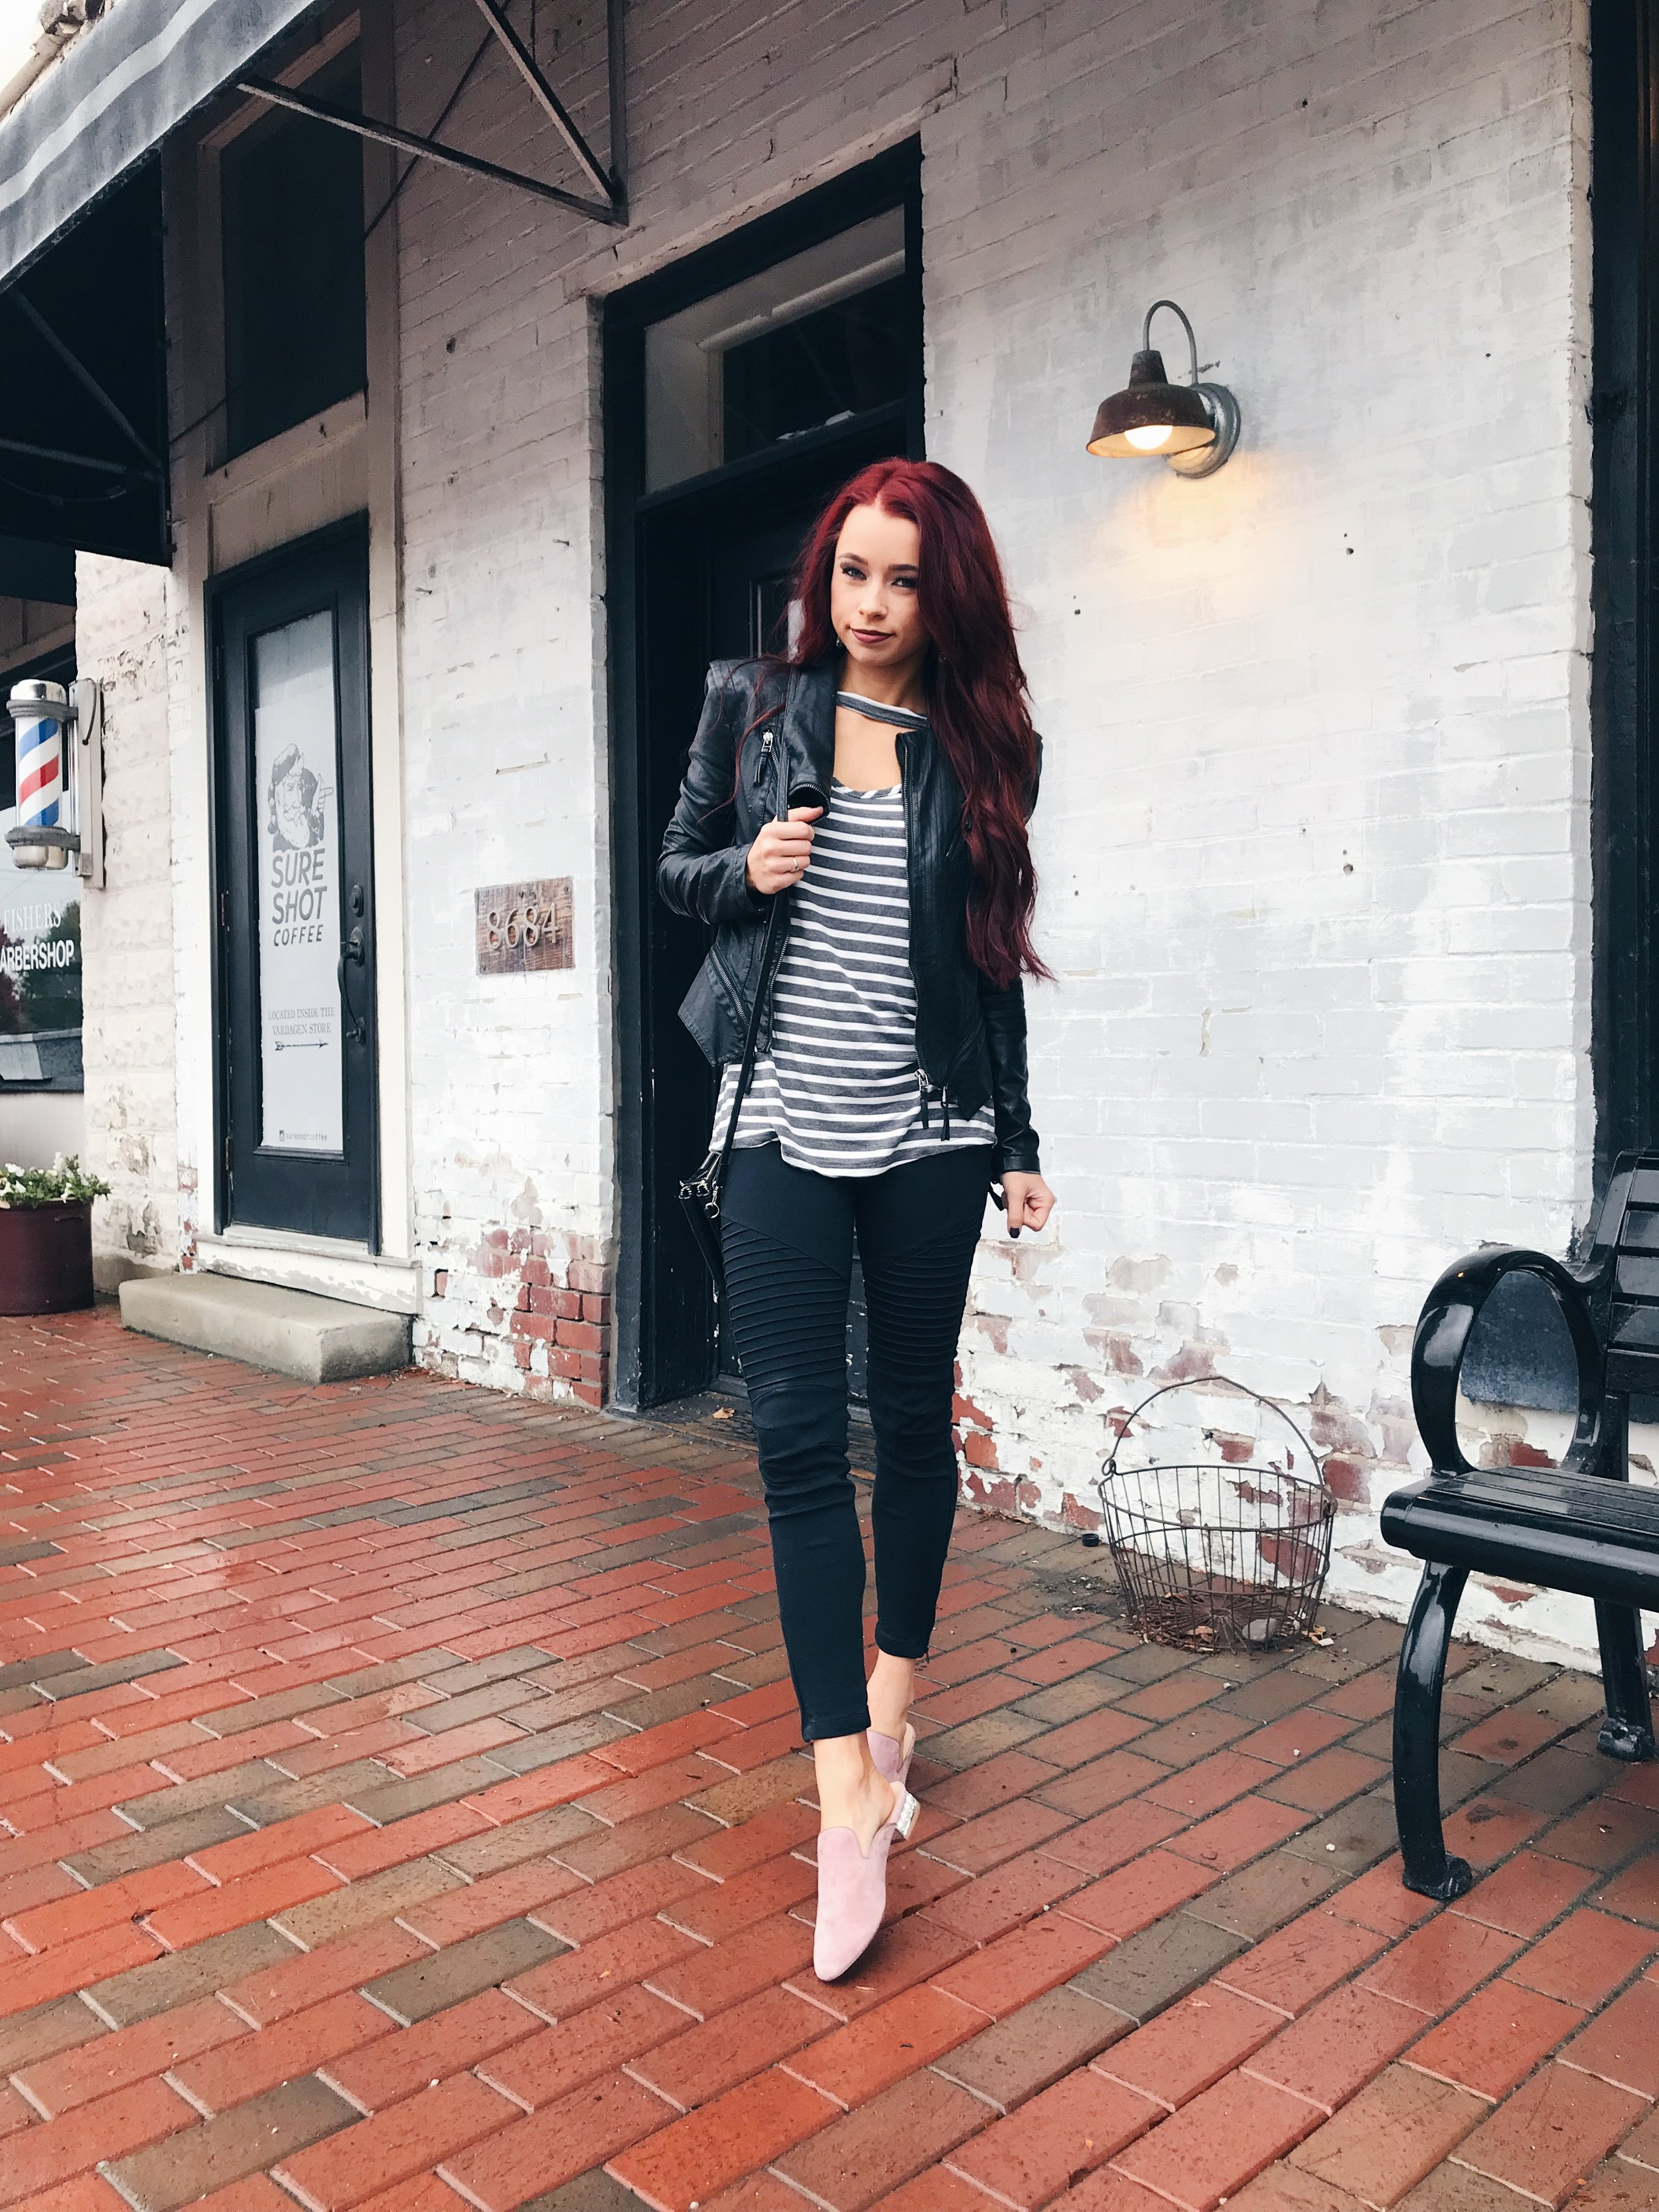 Hello striped top again! I told you guys, I just love stripes. I paired this one from  CCB  with my leather jacket,  moto leggings  from CCB, and my new favorite Steve Madden mules.